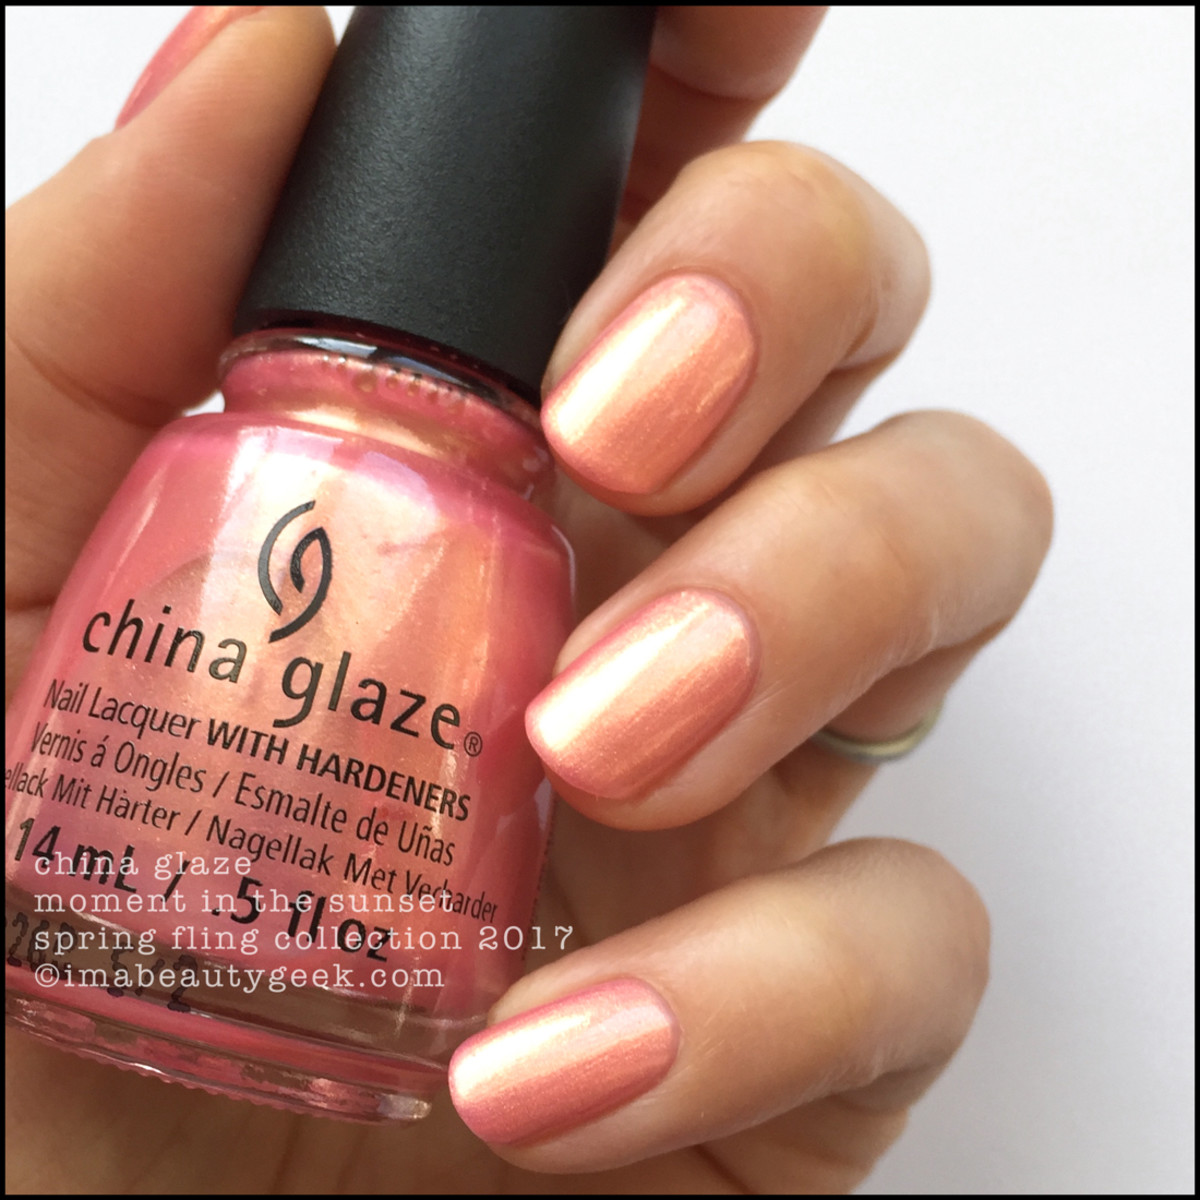 China Glaze Spring Fling_China Glaze Moment in the Sun